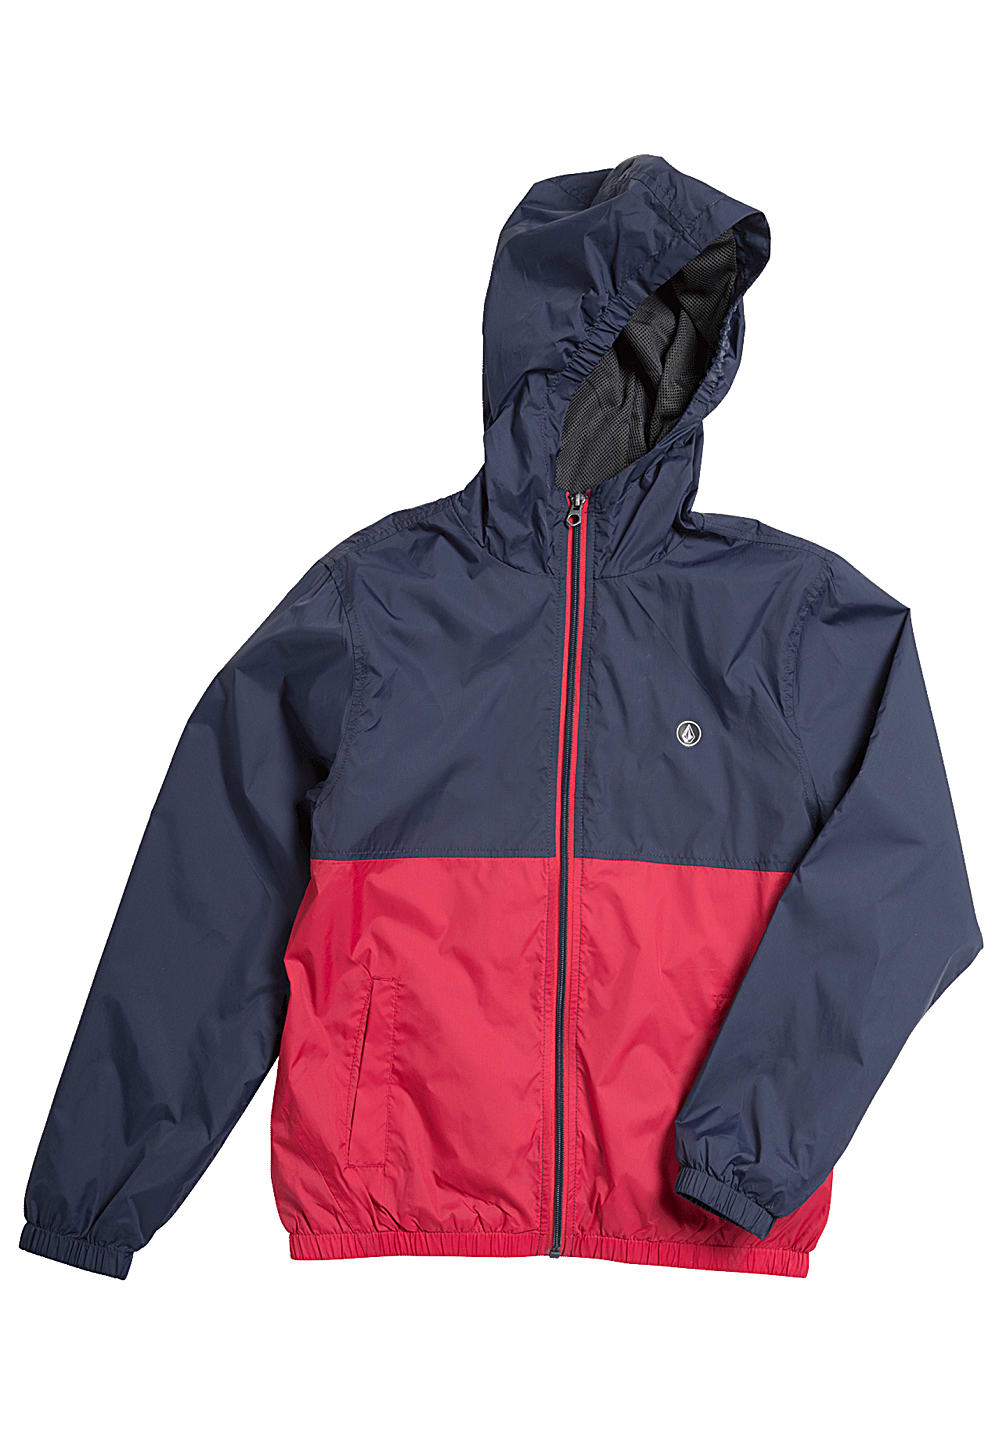 Boysregenwinter - Volcom Ermont Jacke Rot - Onlineshop Planet Sports